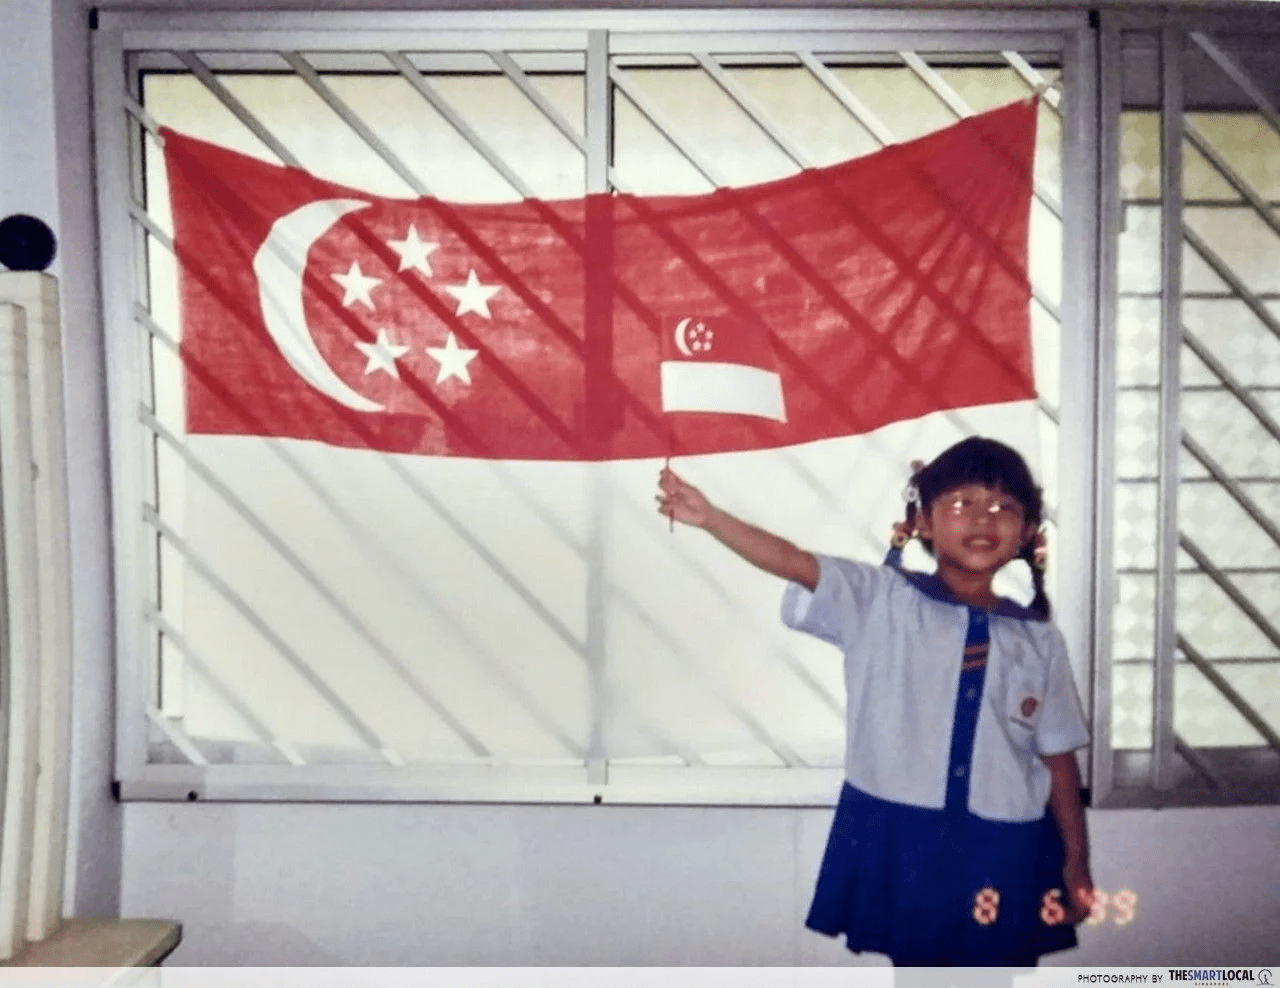 3 stars in our Singapore flag instead of 5